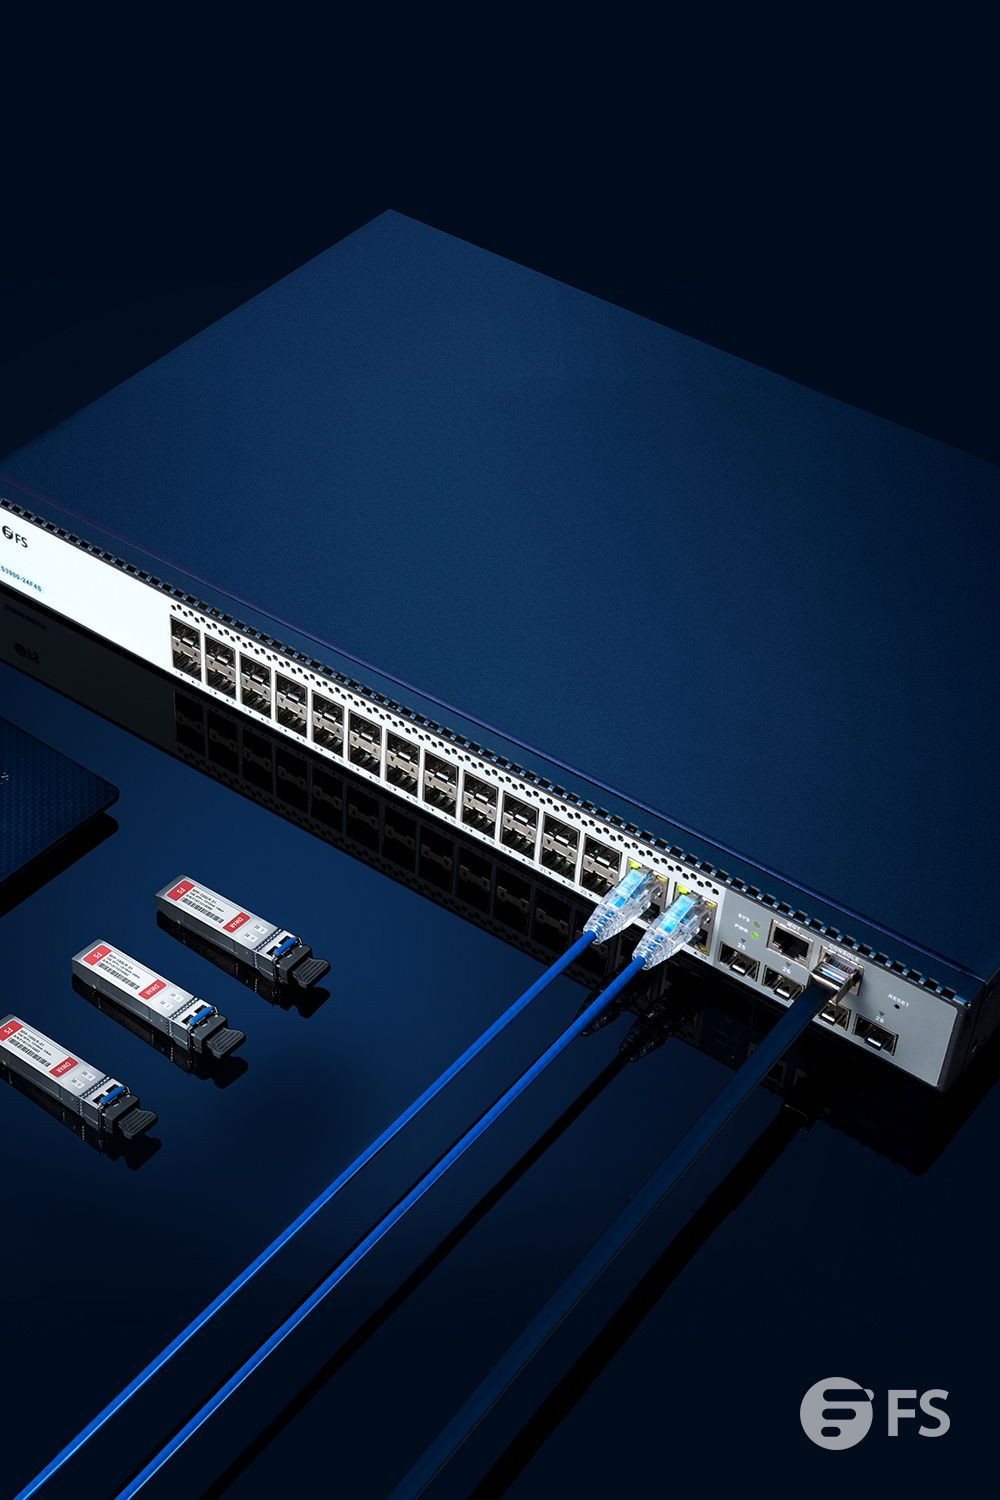 S3900 24t4s Fanless 24 Port 10 100 1000base T Gigabit Stackable Managed Switch With 4 10gb Sfp Uplinks Internet Switch Network Switch Port